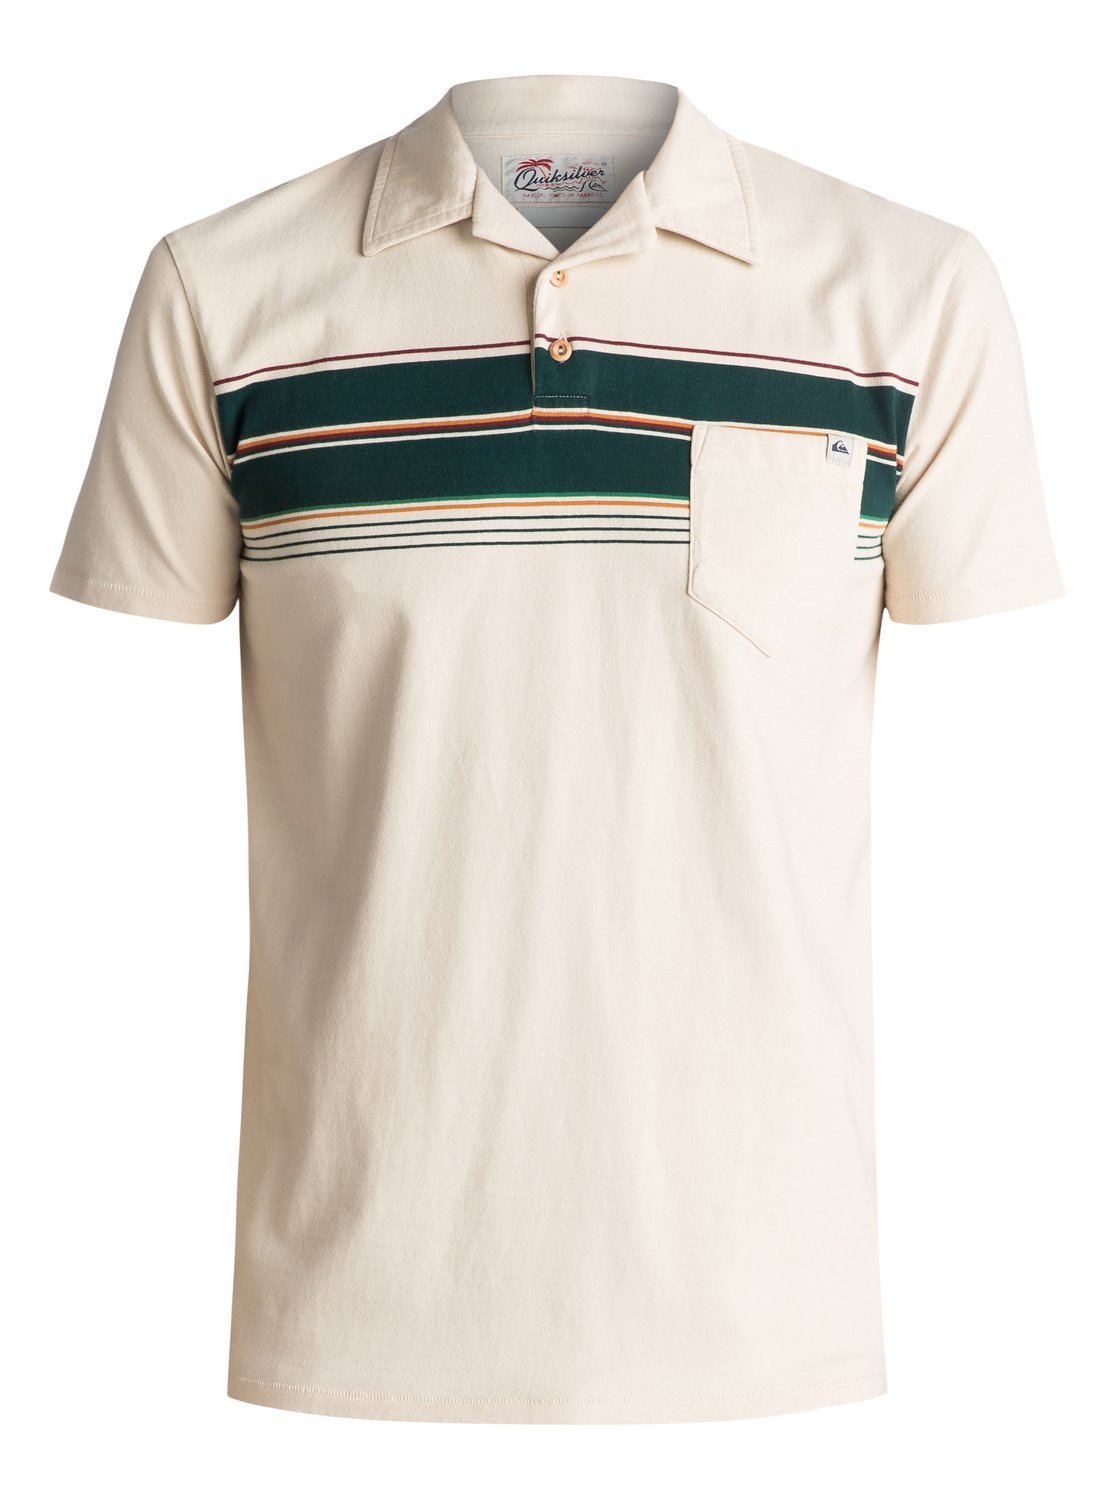 Daba Wy - Polo pour Homme - Quiksilver